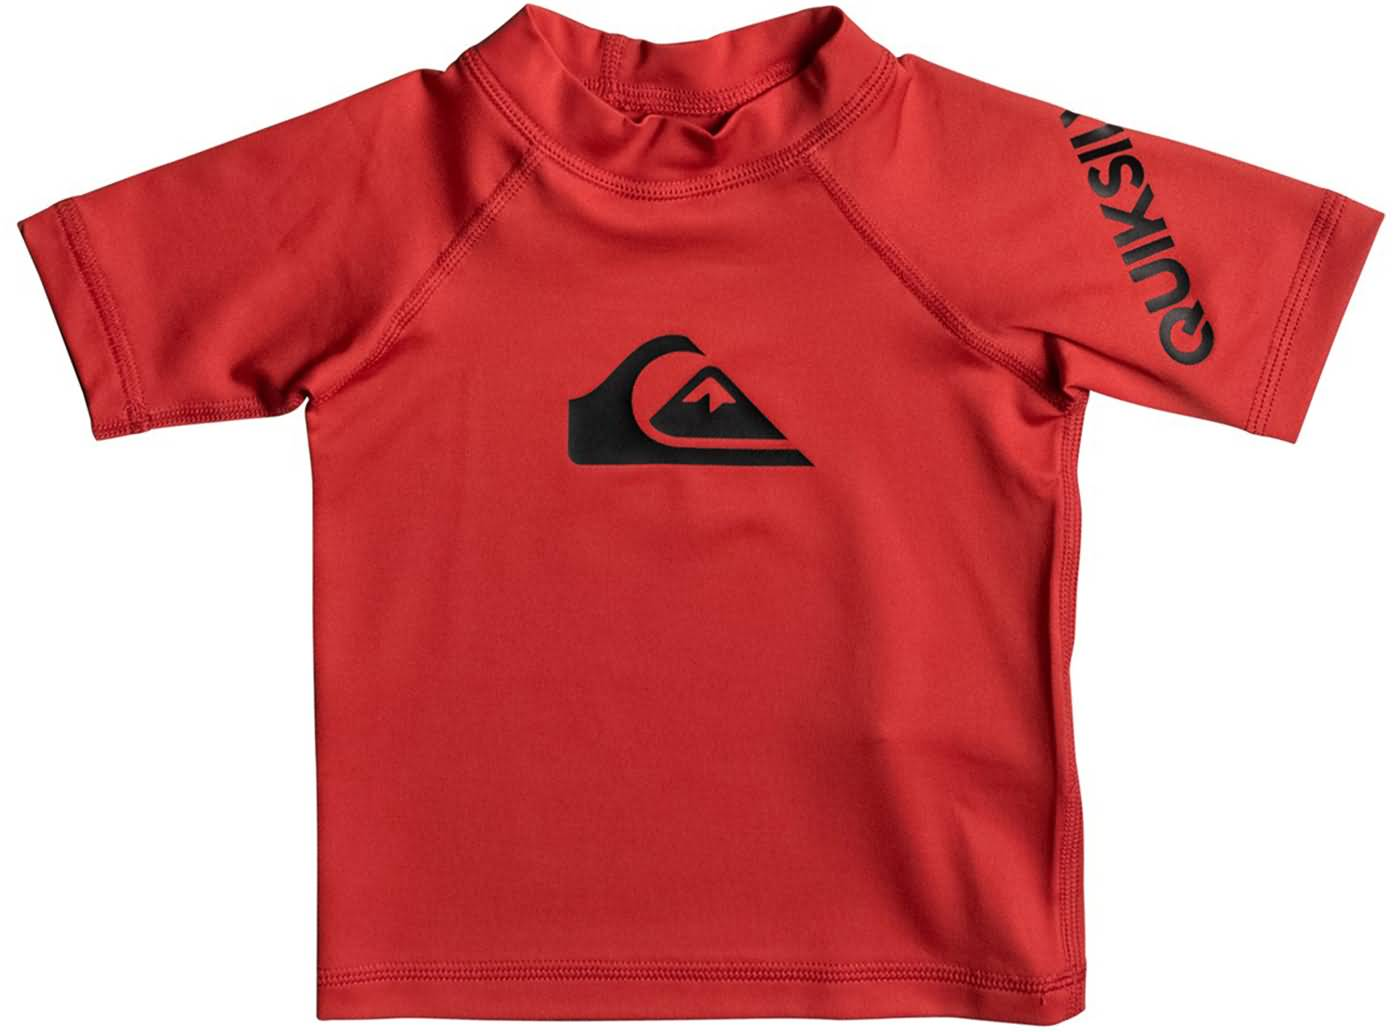 Quiksilver Fall 2017 Kids & Infant Beach Surfing Rashguards Preview